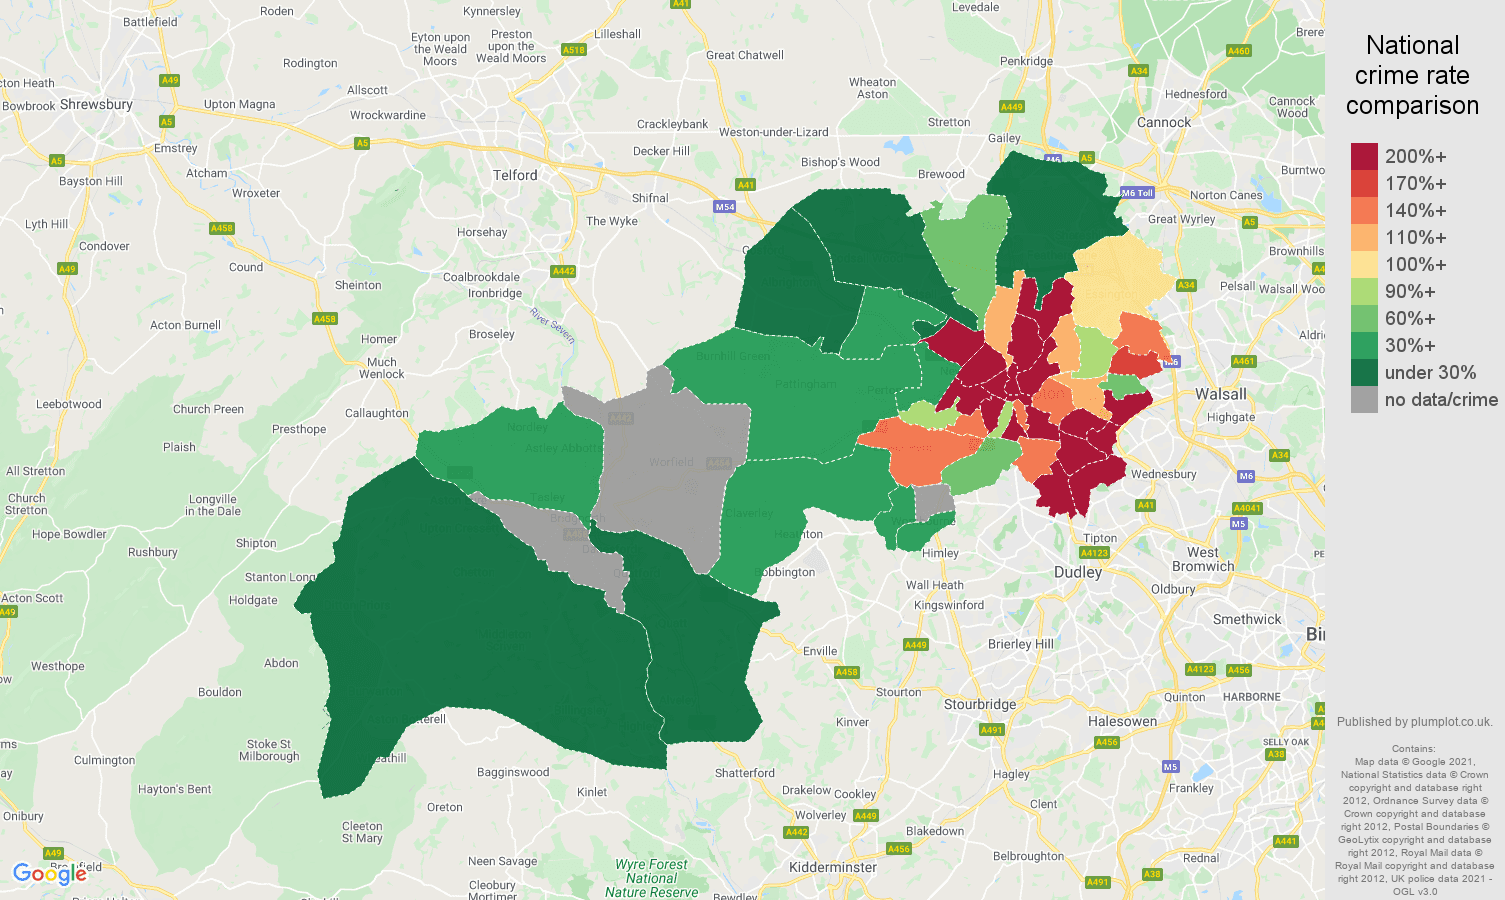 Wolverhampton robbery crime rate comparison map